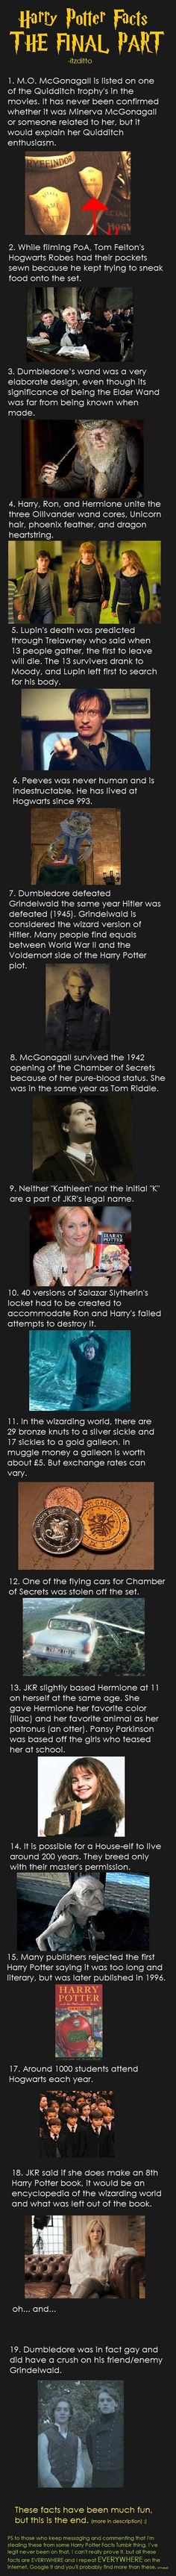 Harry Potter Facts 9 (The Final Part) - Imgur. (Re #1 and #8, if McGonagall was in school with Tom Riddle, she didn't play Quidditch with James Potter.)